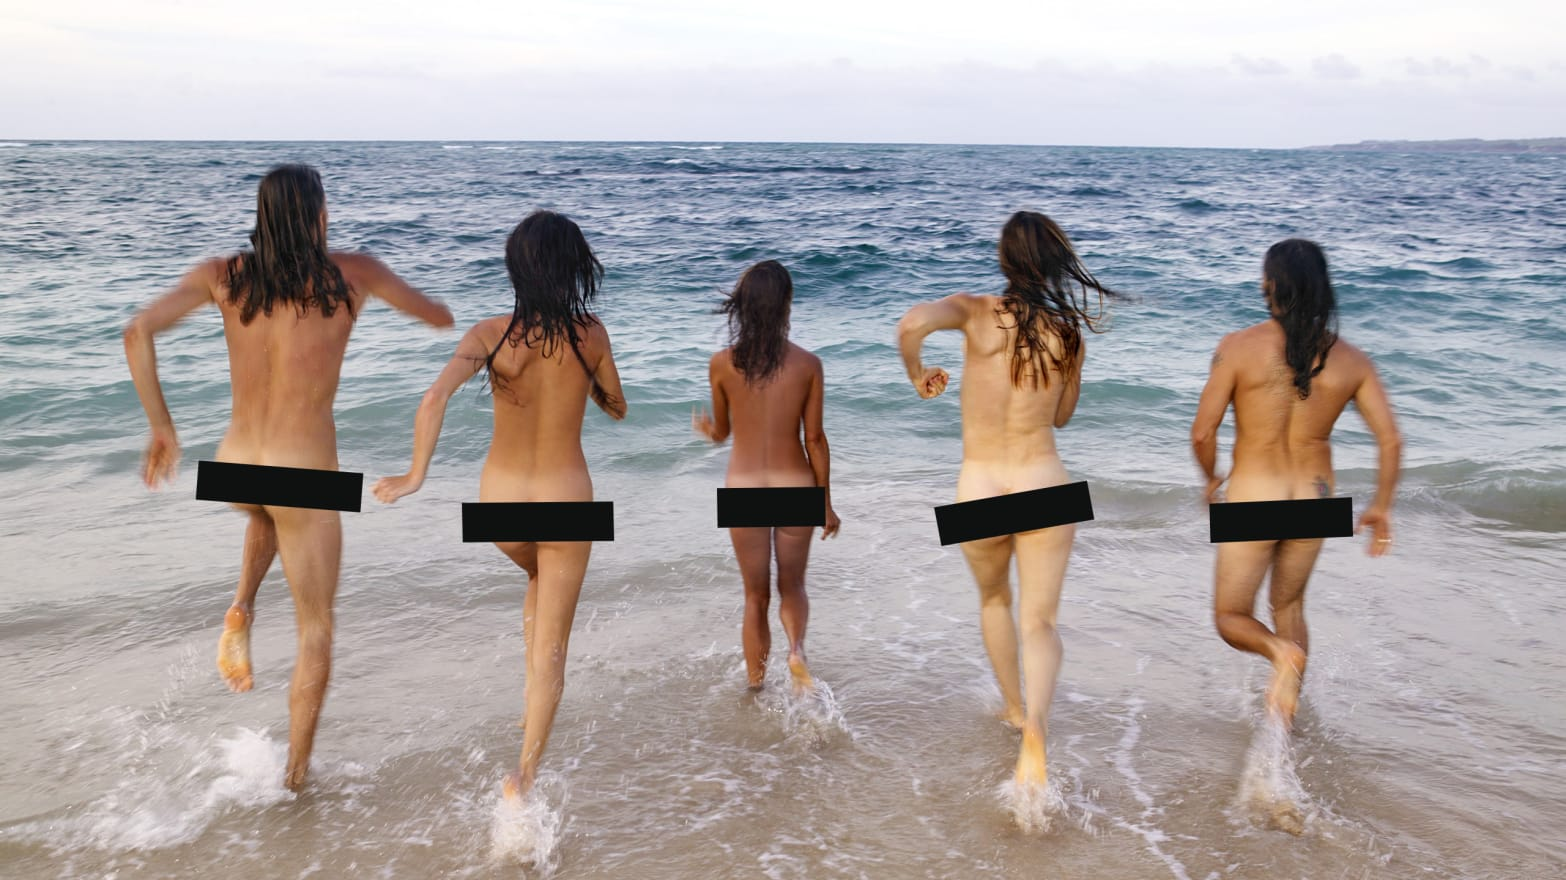 Junior girls nude beach